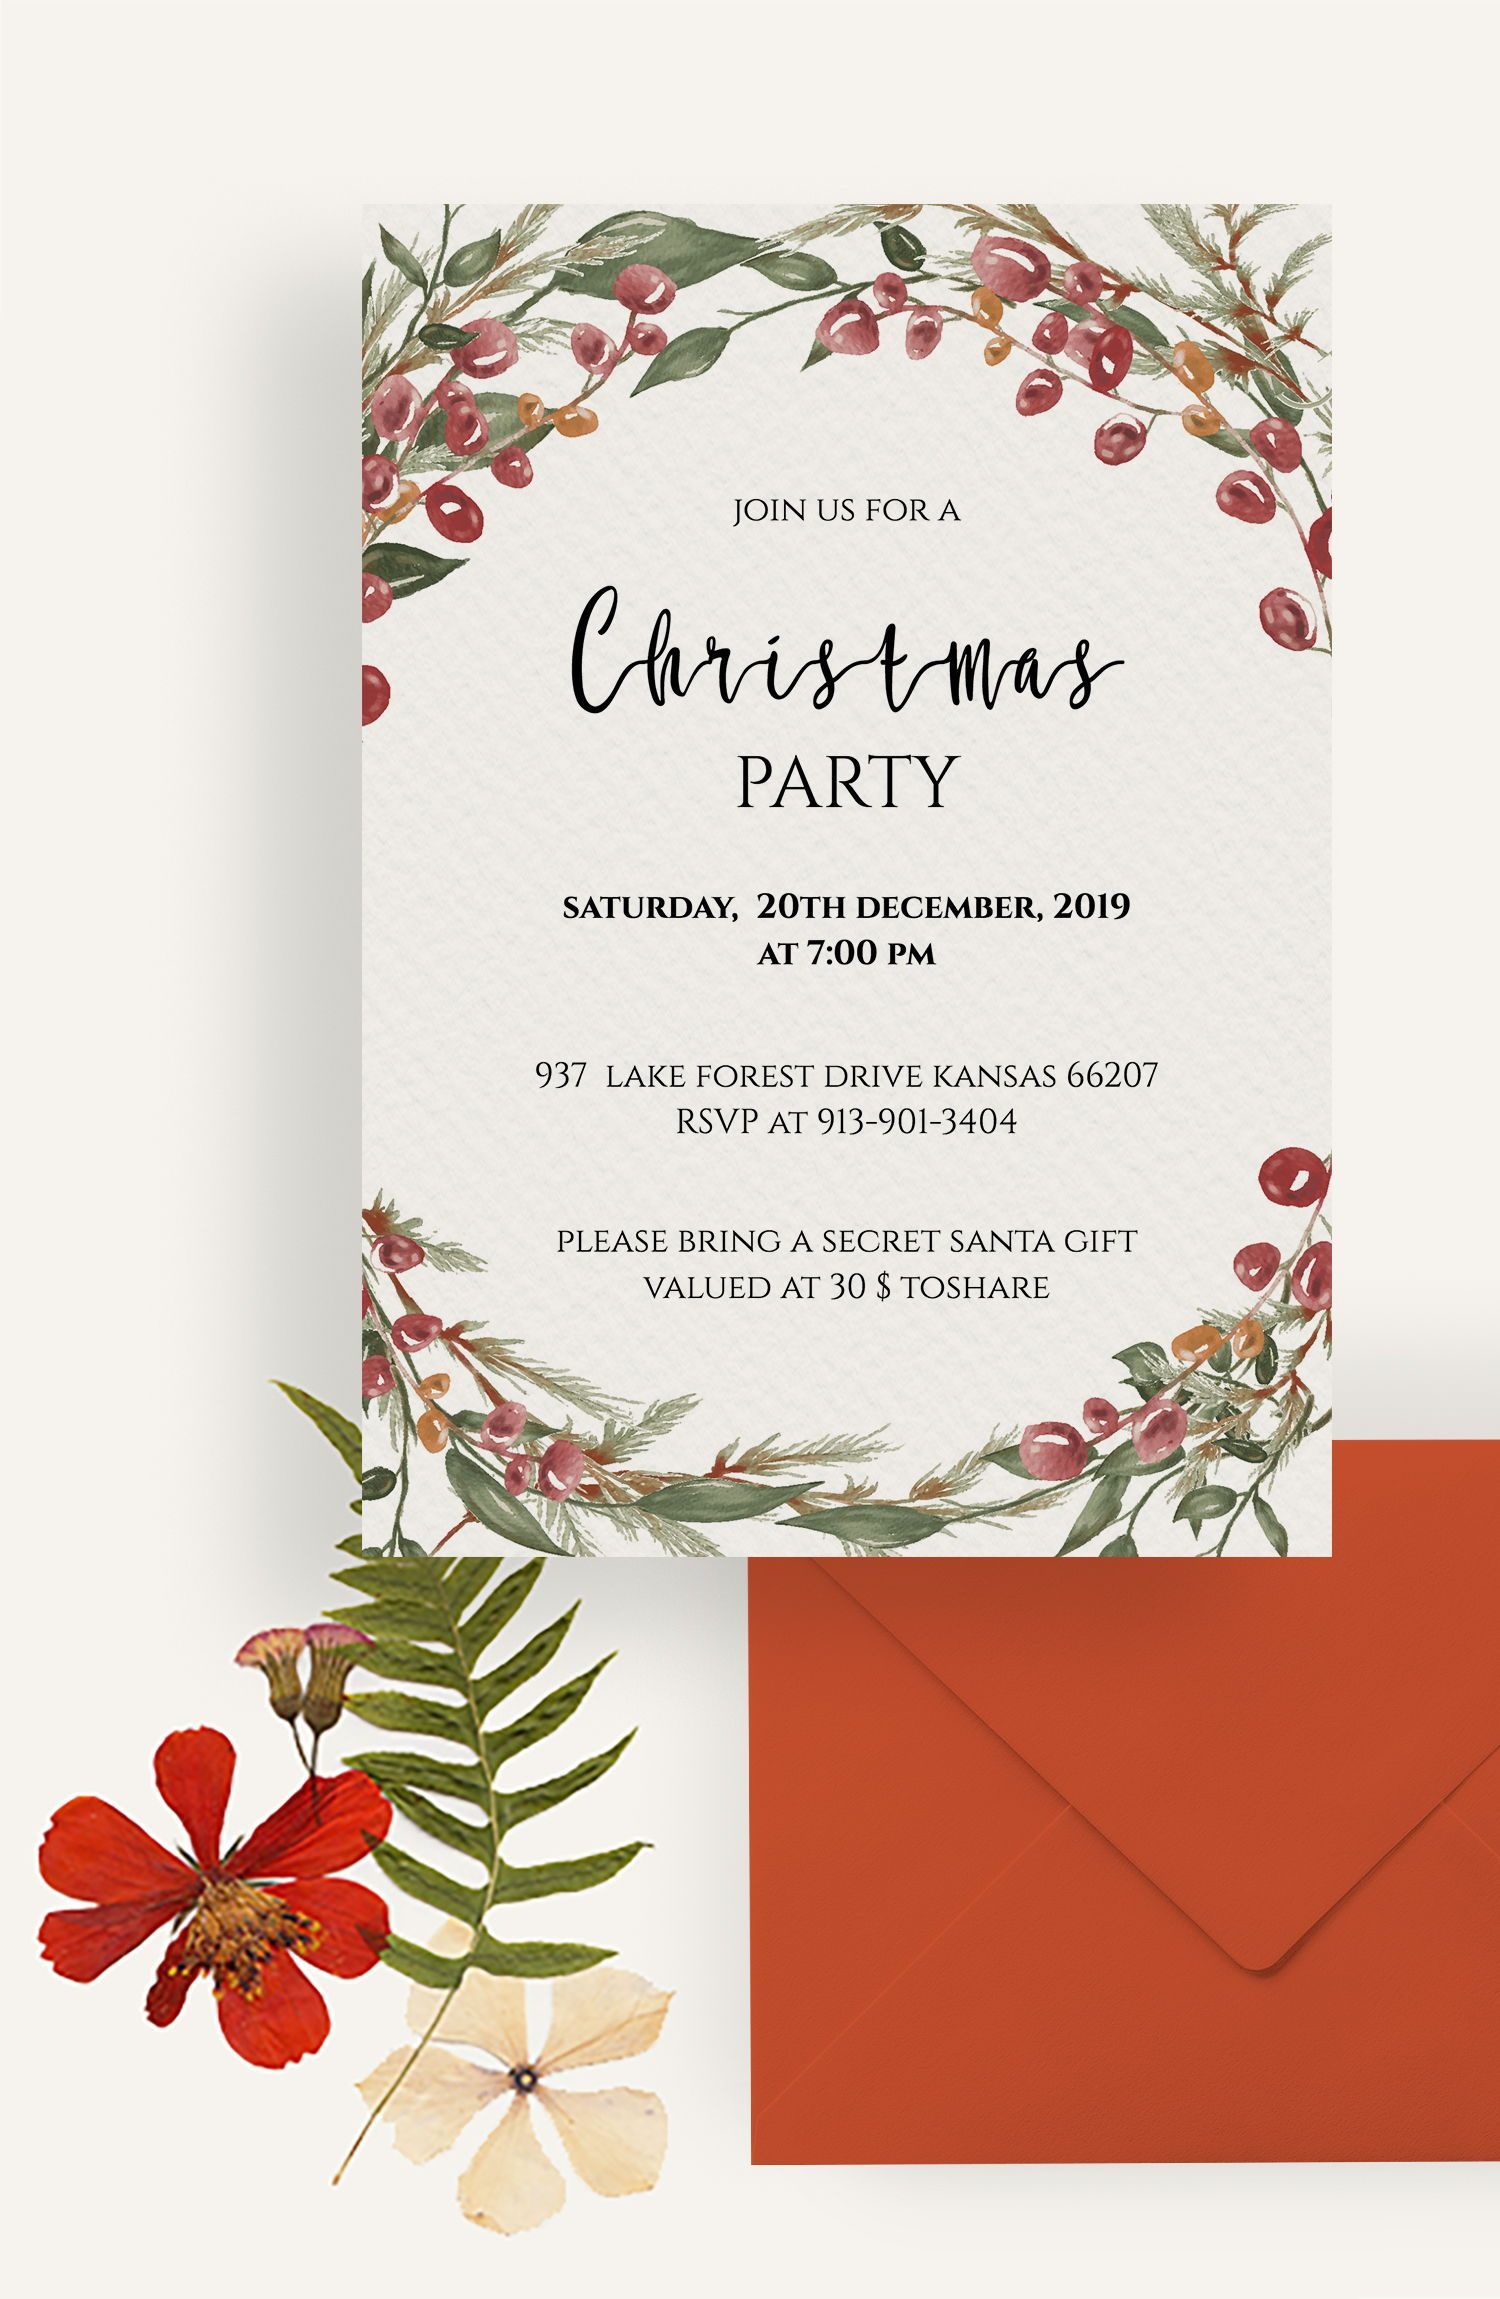 Berry Christmas Card Downloadable Christmas Card Christmas Etsy Christmas Card Template Christmas Invitation Card Creative Christmas Cards